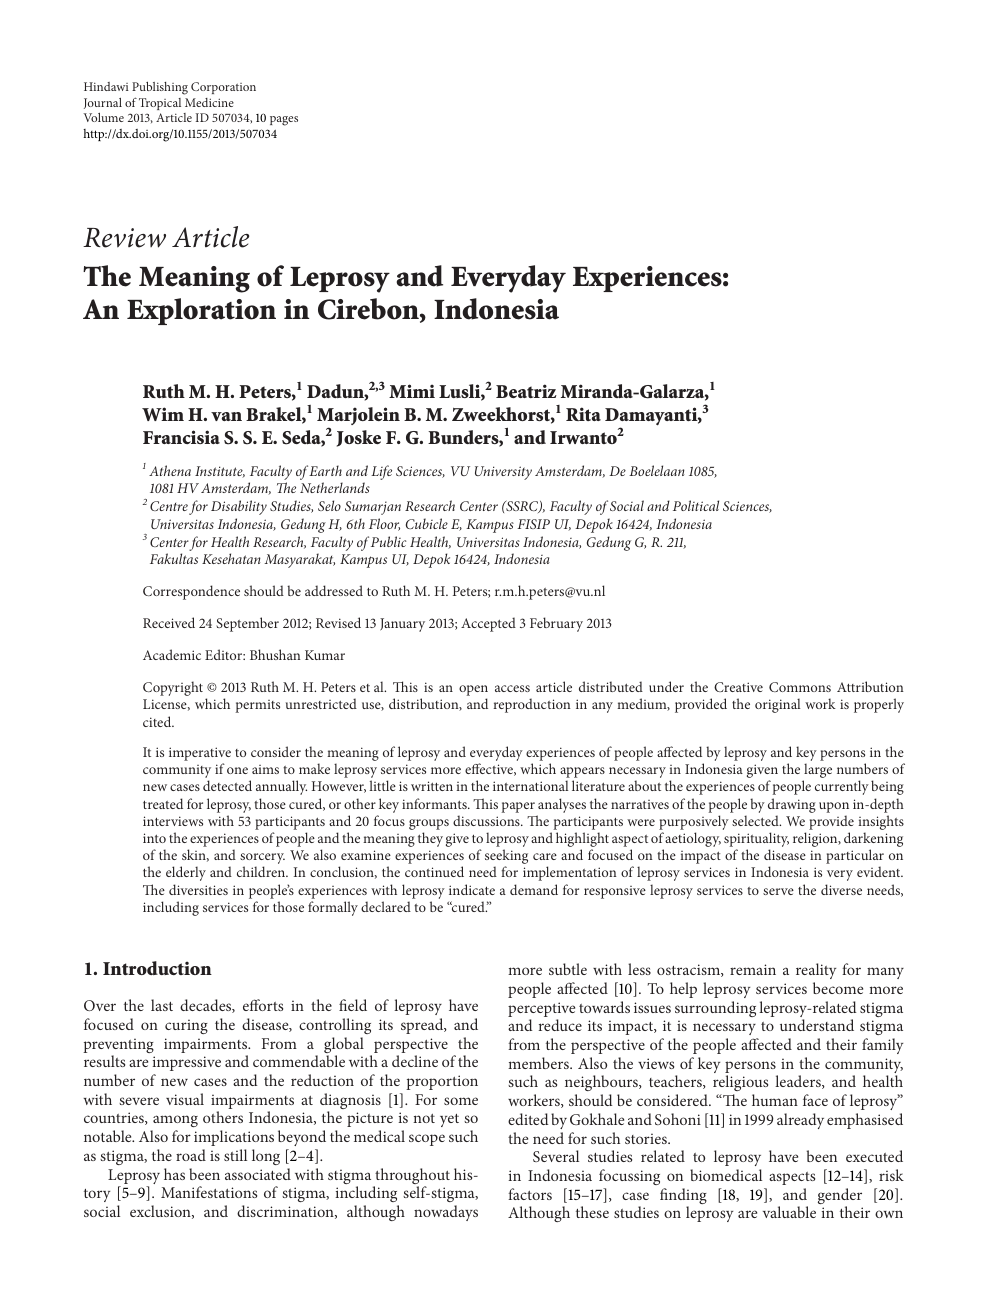 the meaning of leprosy and everyday experiences an exploration in